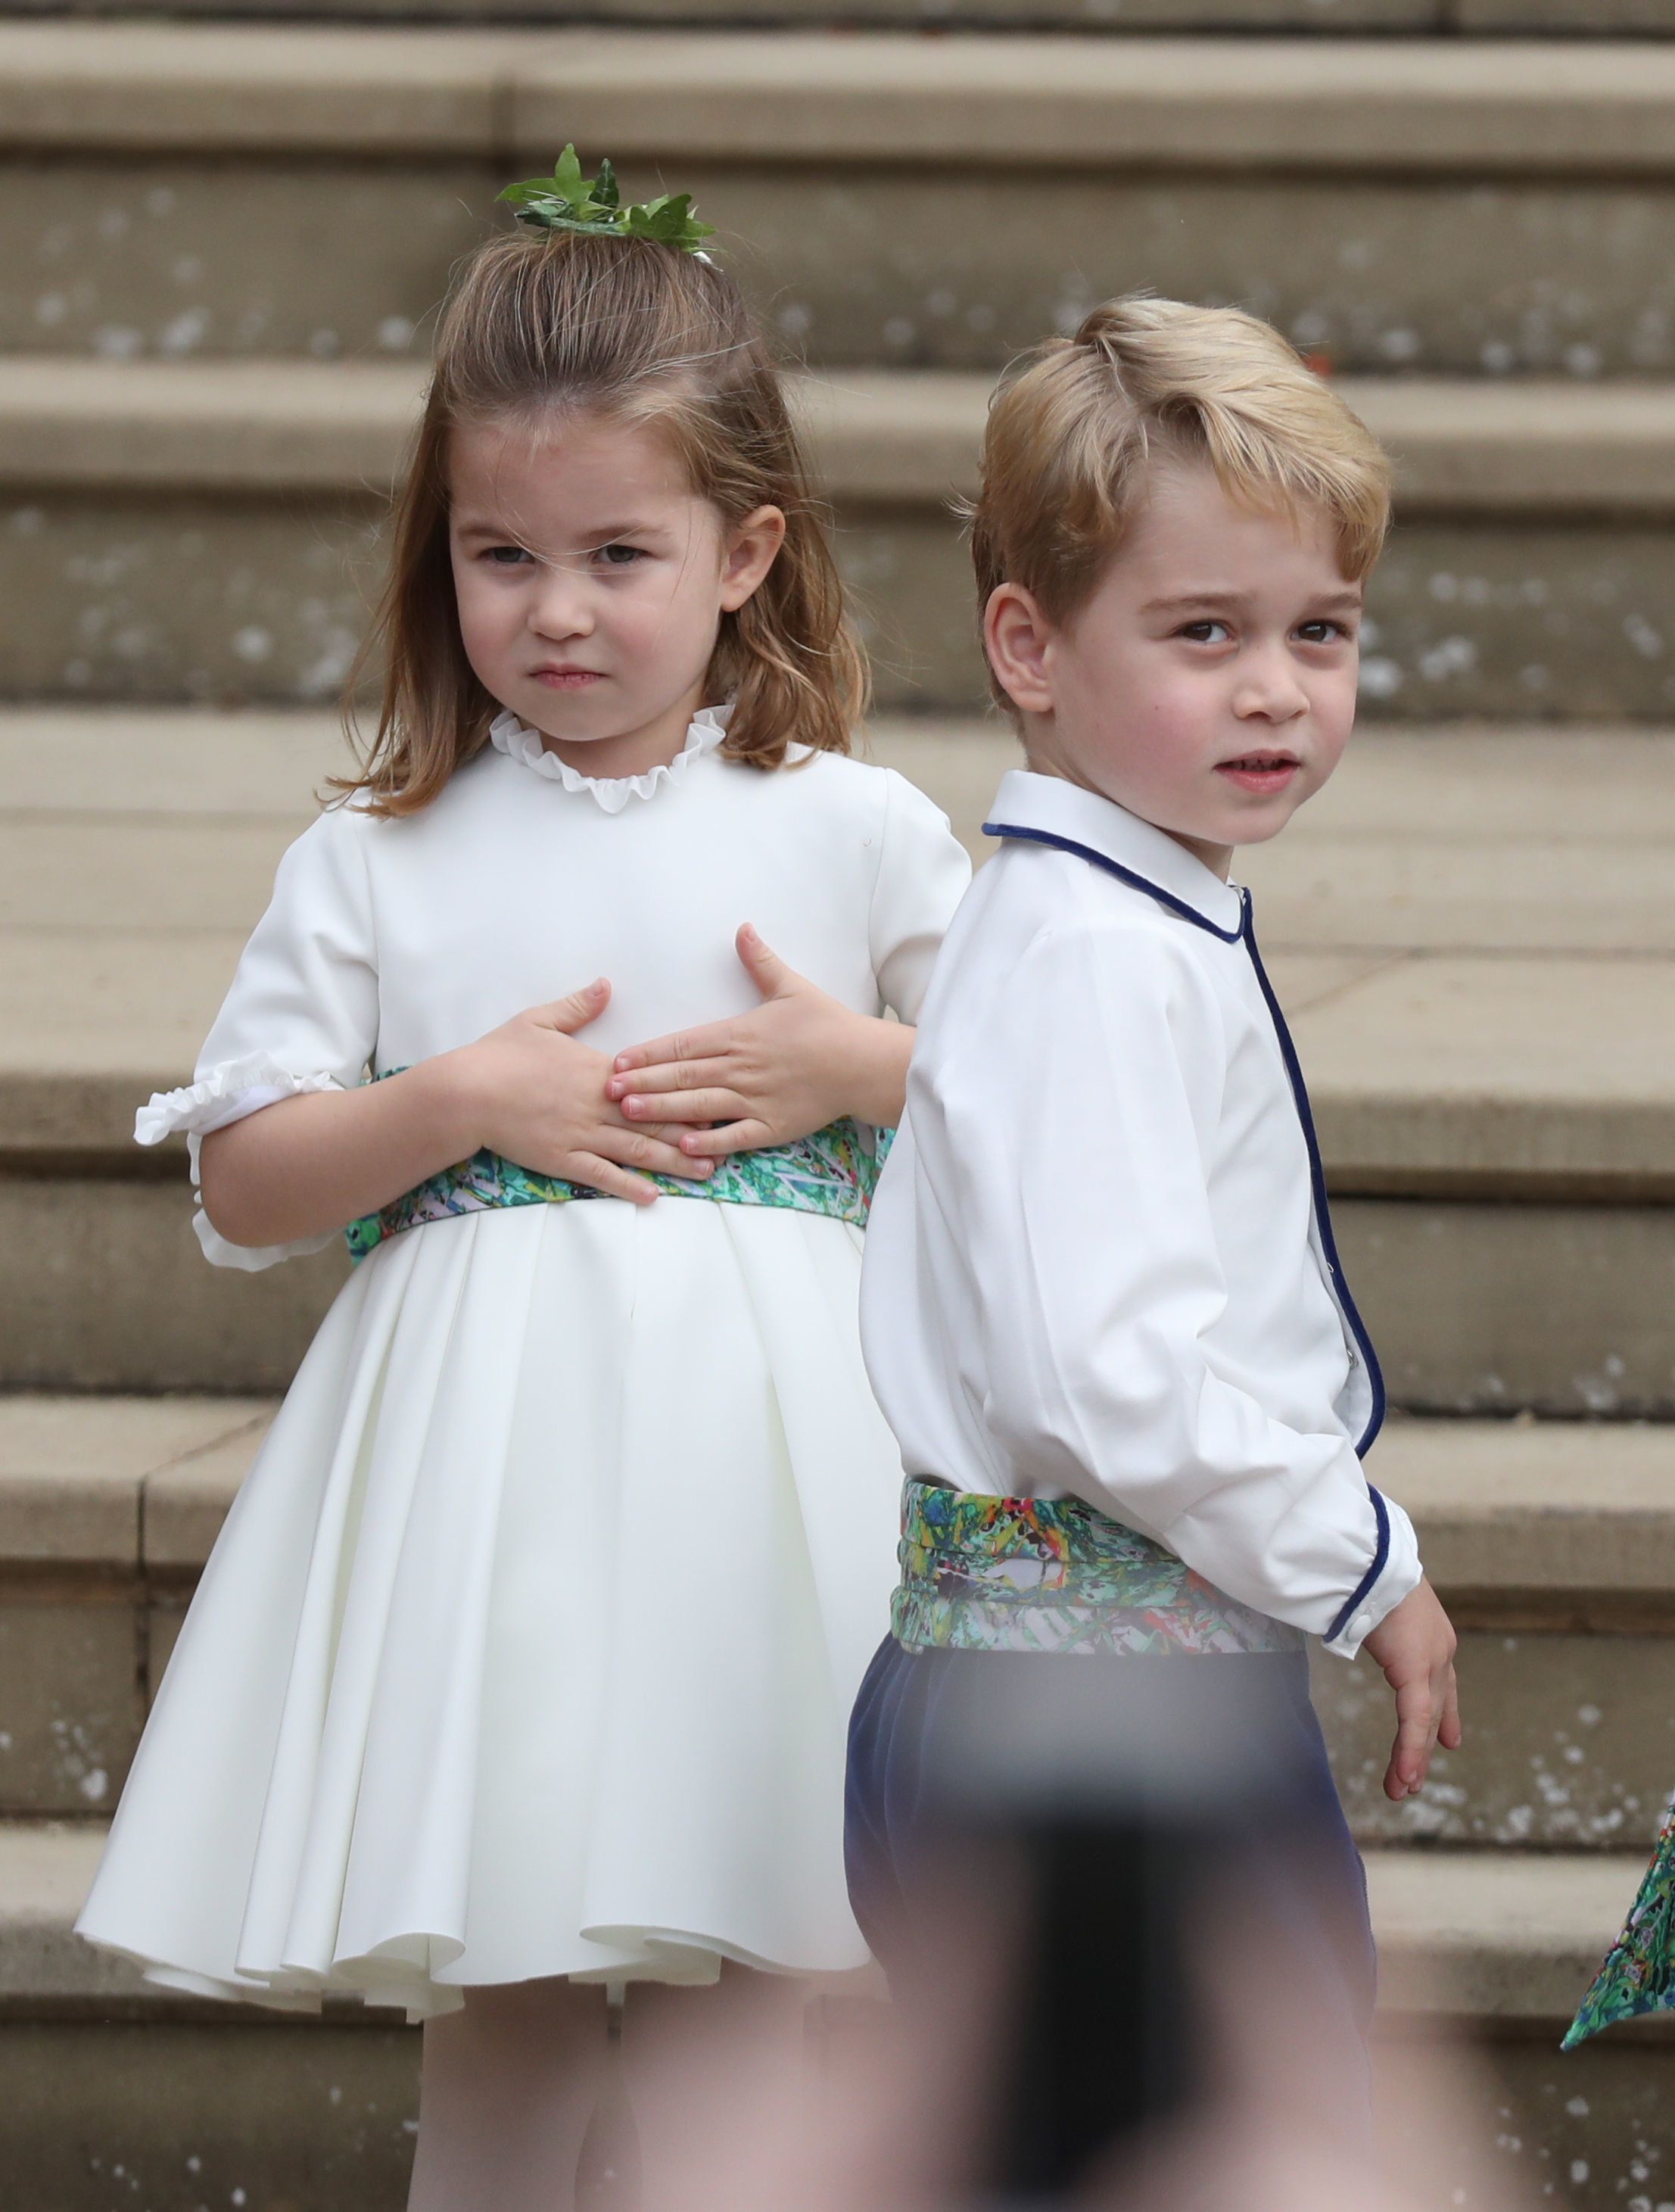 Princess Charlotte and Prince George arrive for the wedding of Princess Eugenie to Jack Brooksbank at St George's Chapel in Windsor Castle.